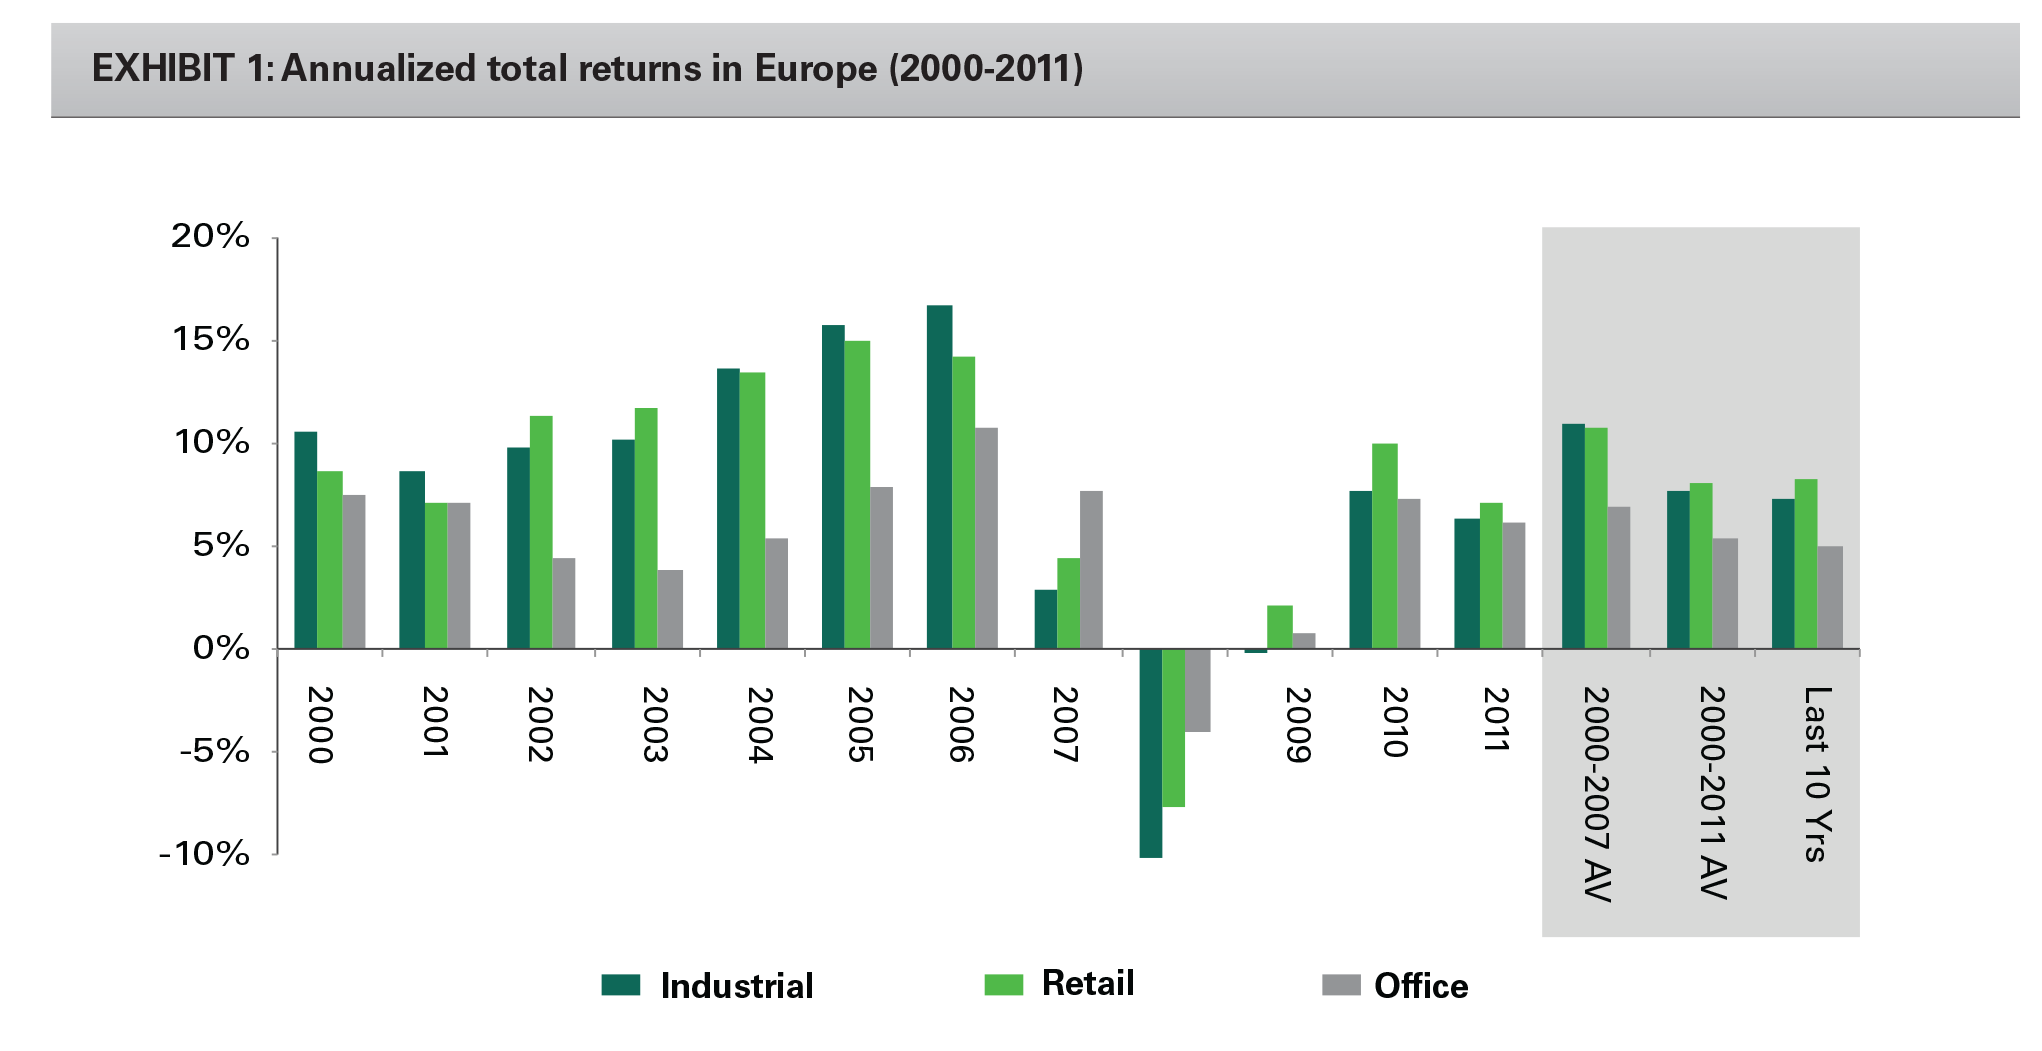 EXHIBIT 1: Annualized total returns in Europe (2000-2011)